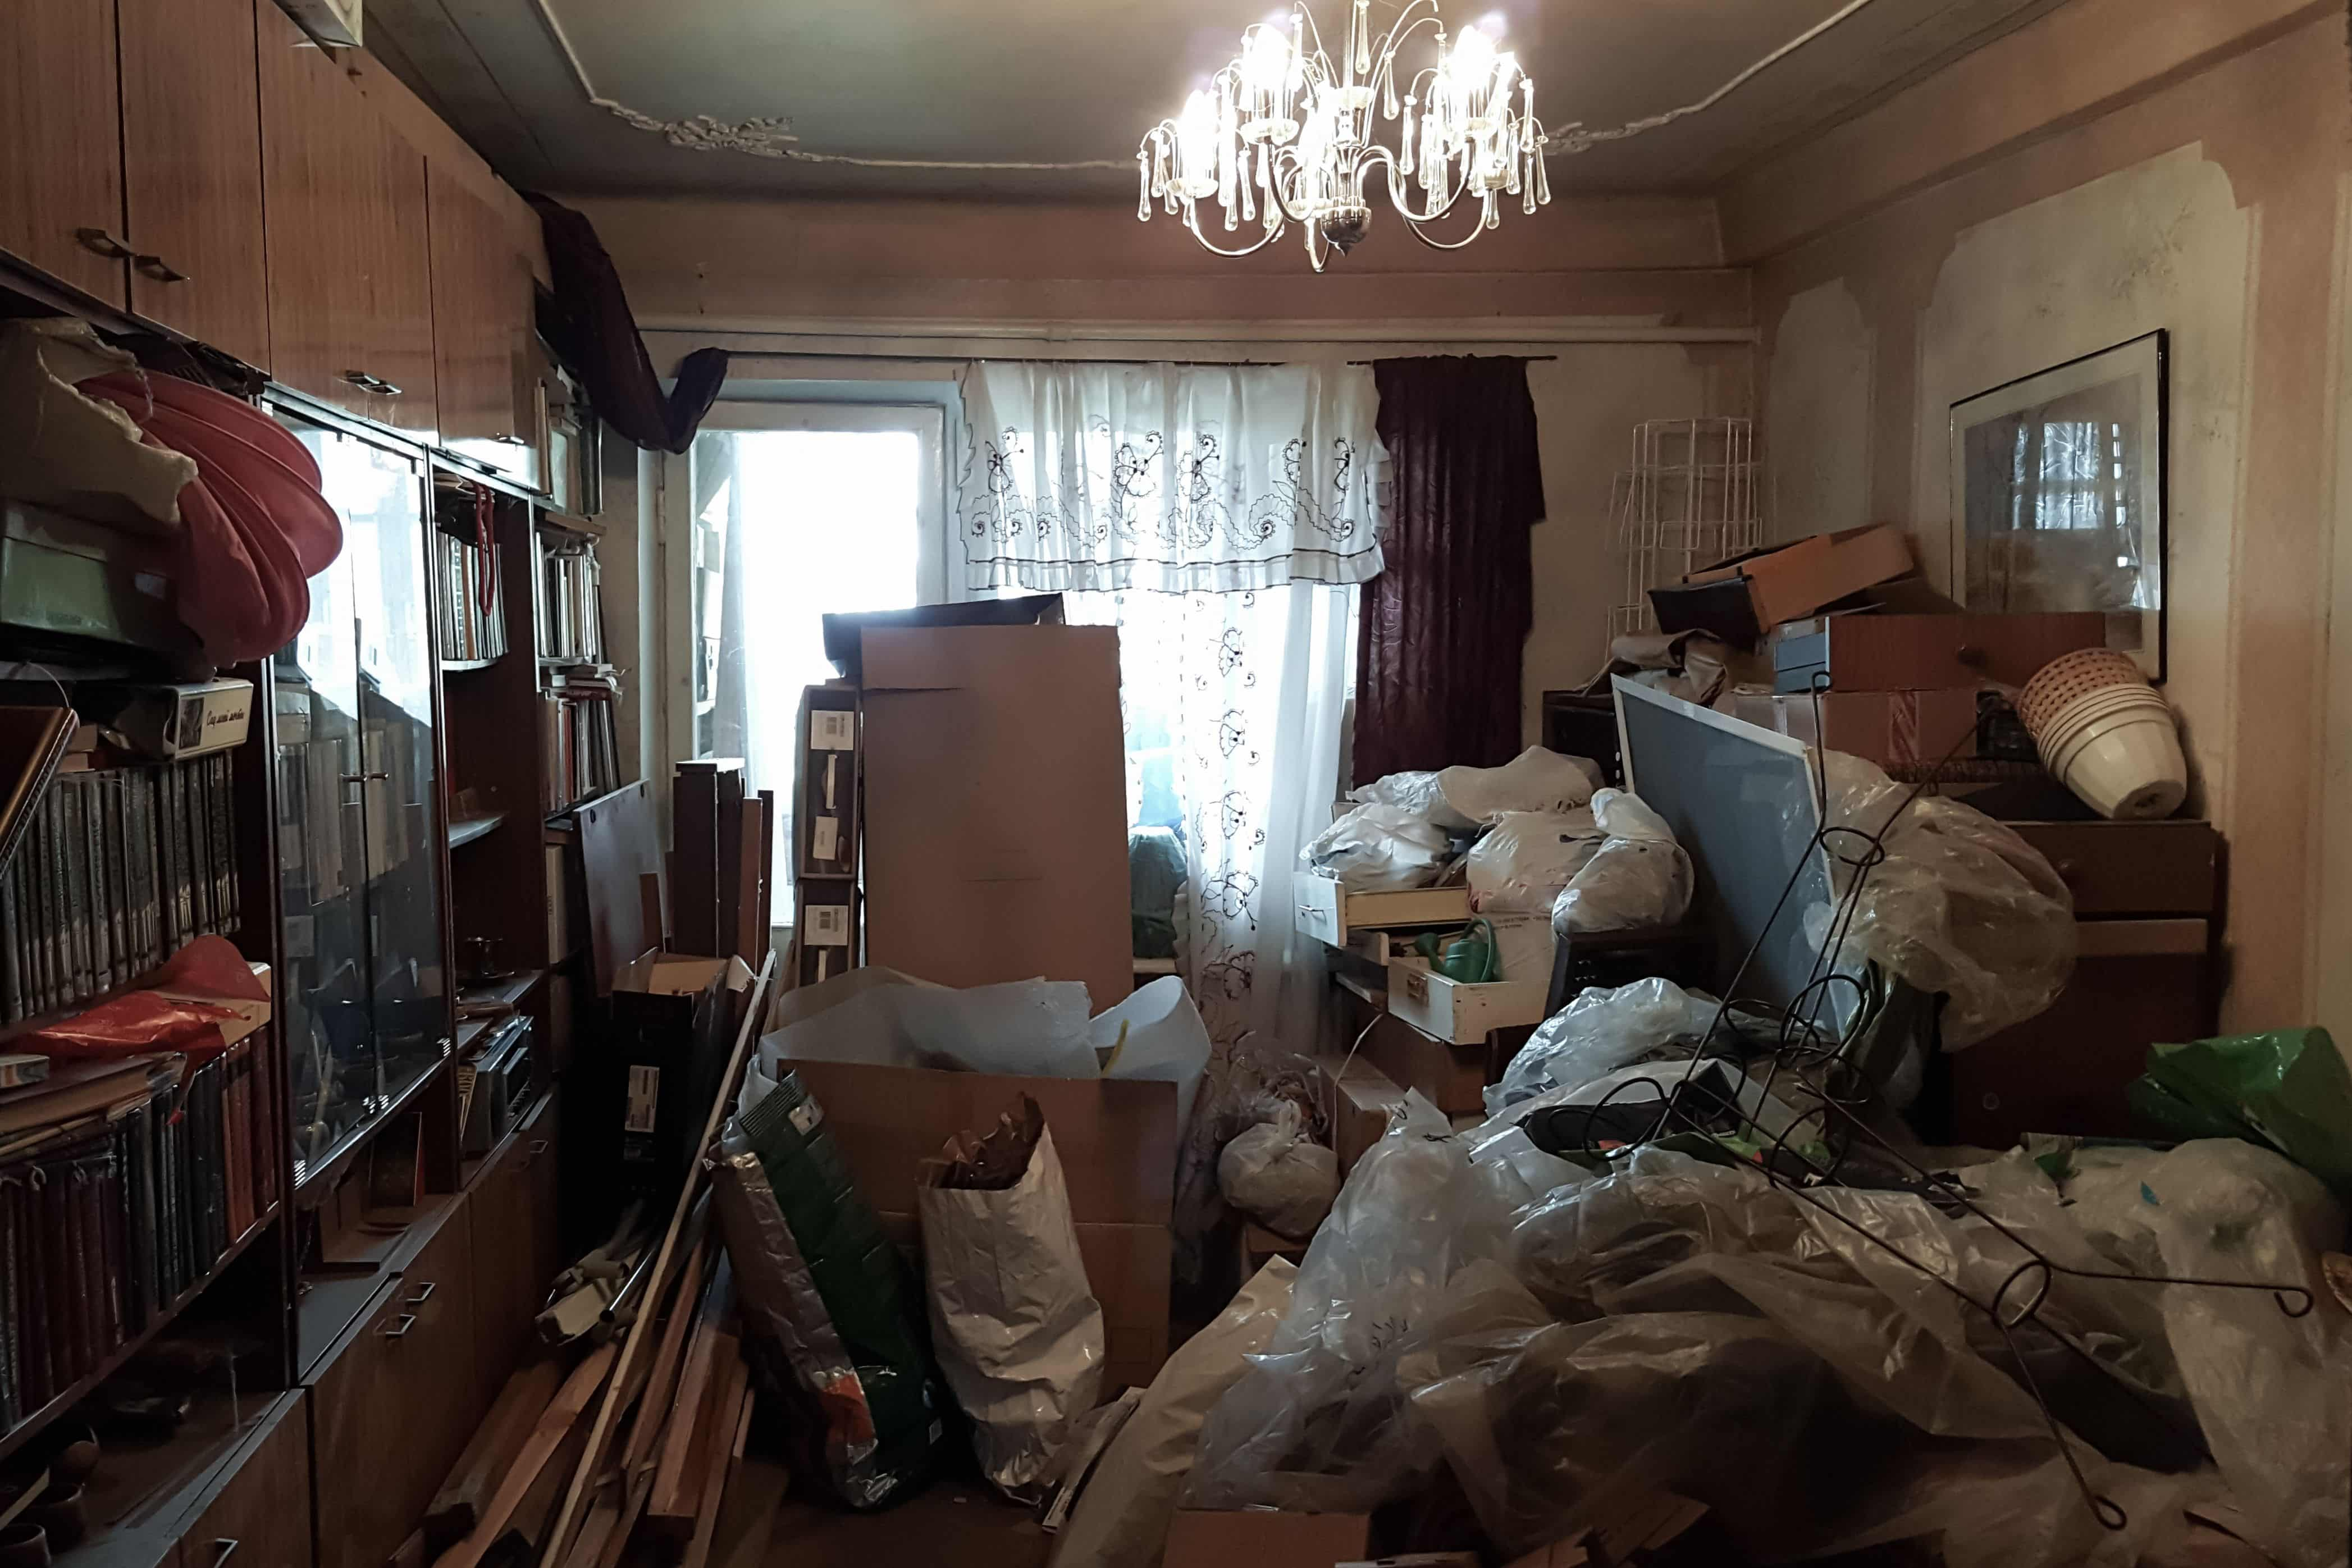 Effective Ways to Stop Hoarding Today